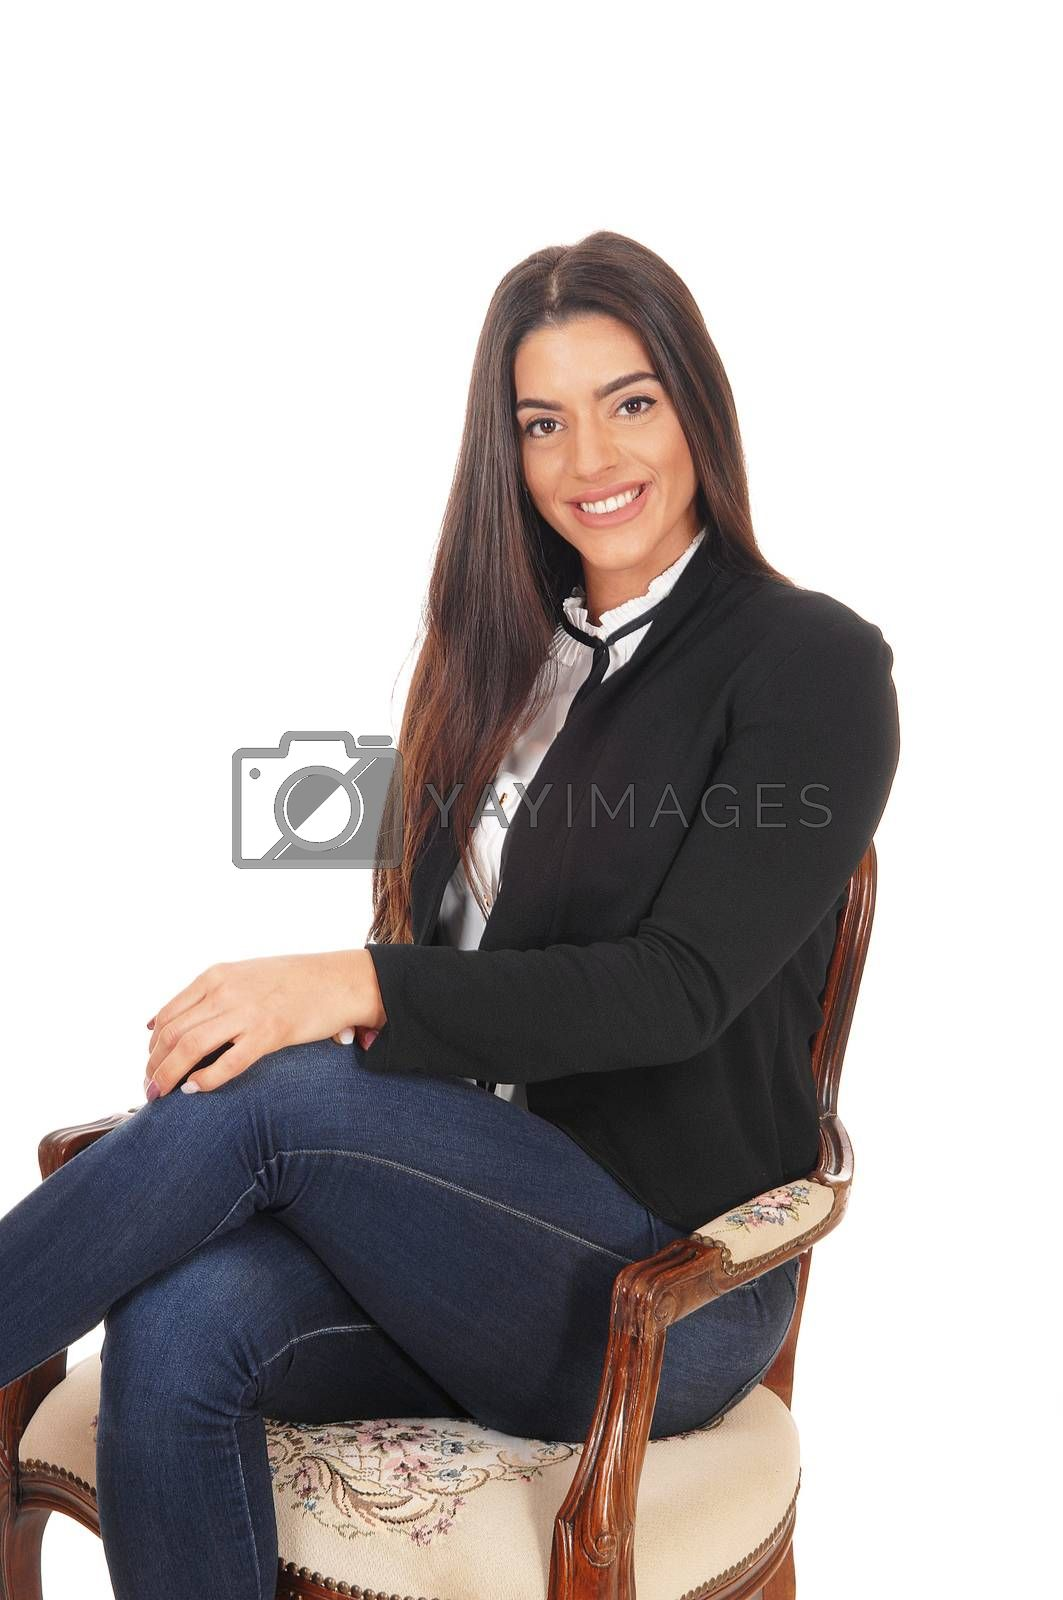 A gorgeous young woman sitting in jeans and a black jacket smiling, isolated for white background